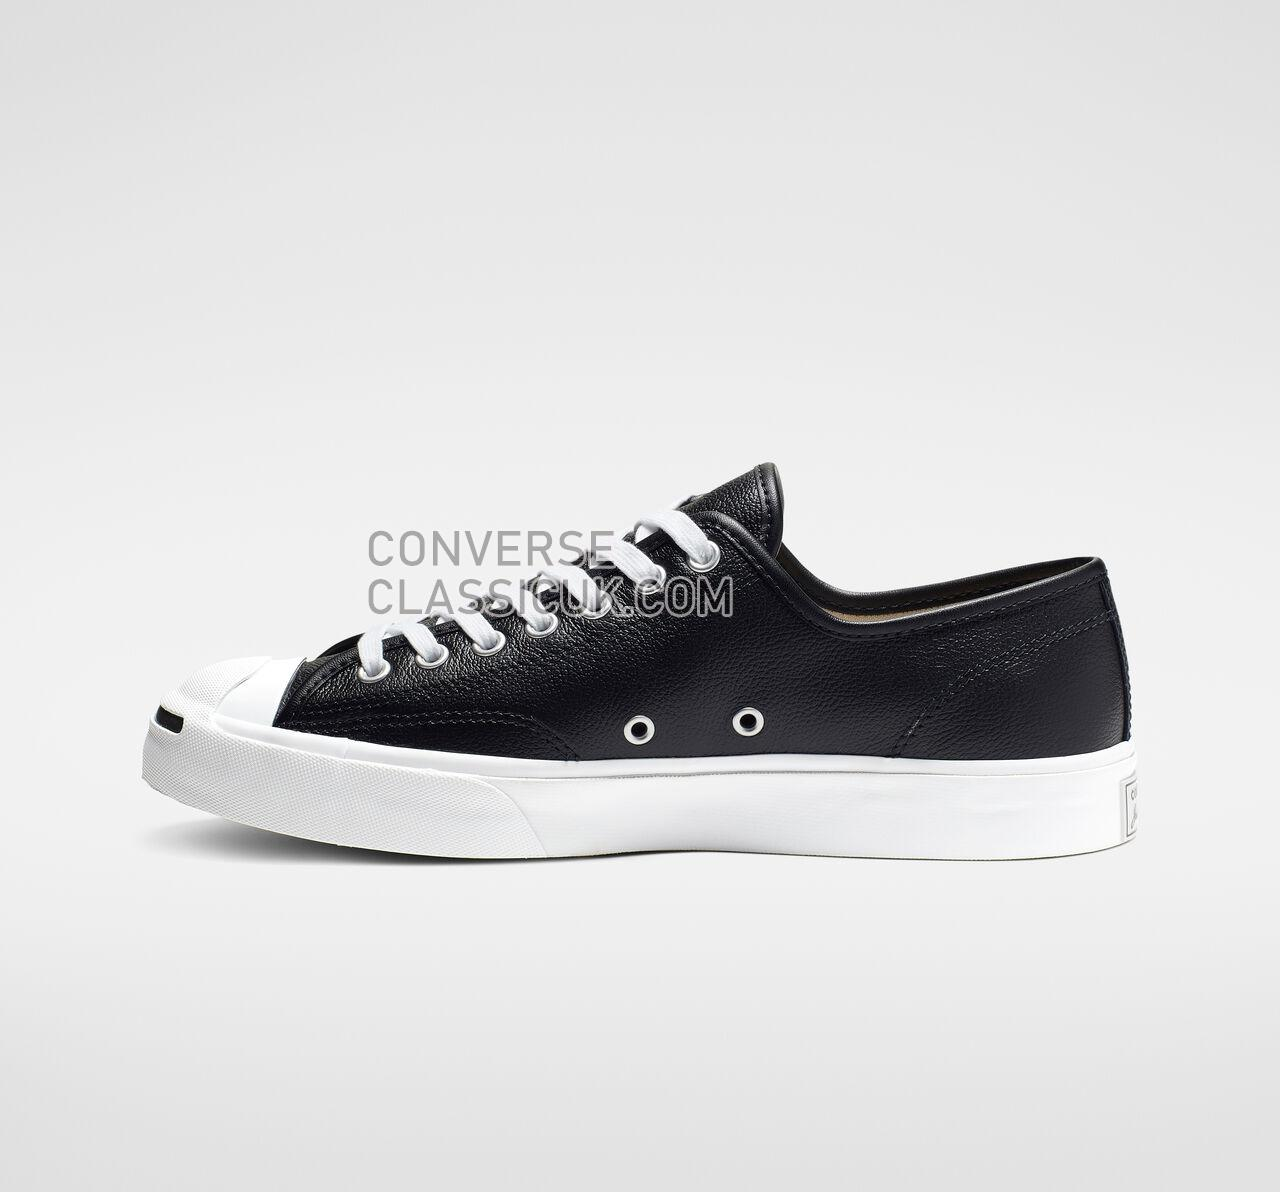 Converse Jack Purcell Leather Low Top Mens Womens Unisex 164224C Black/White/White Shoes